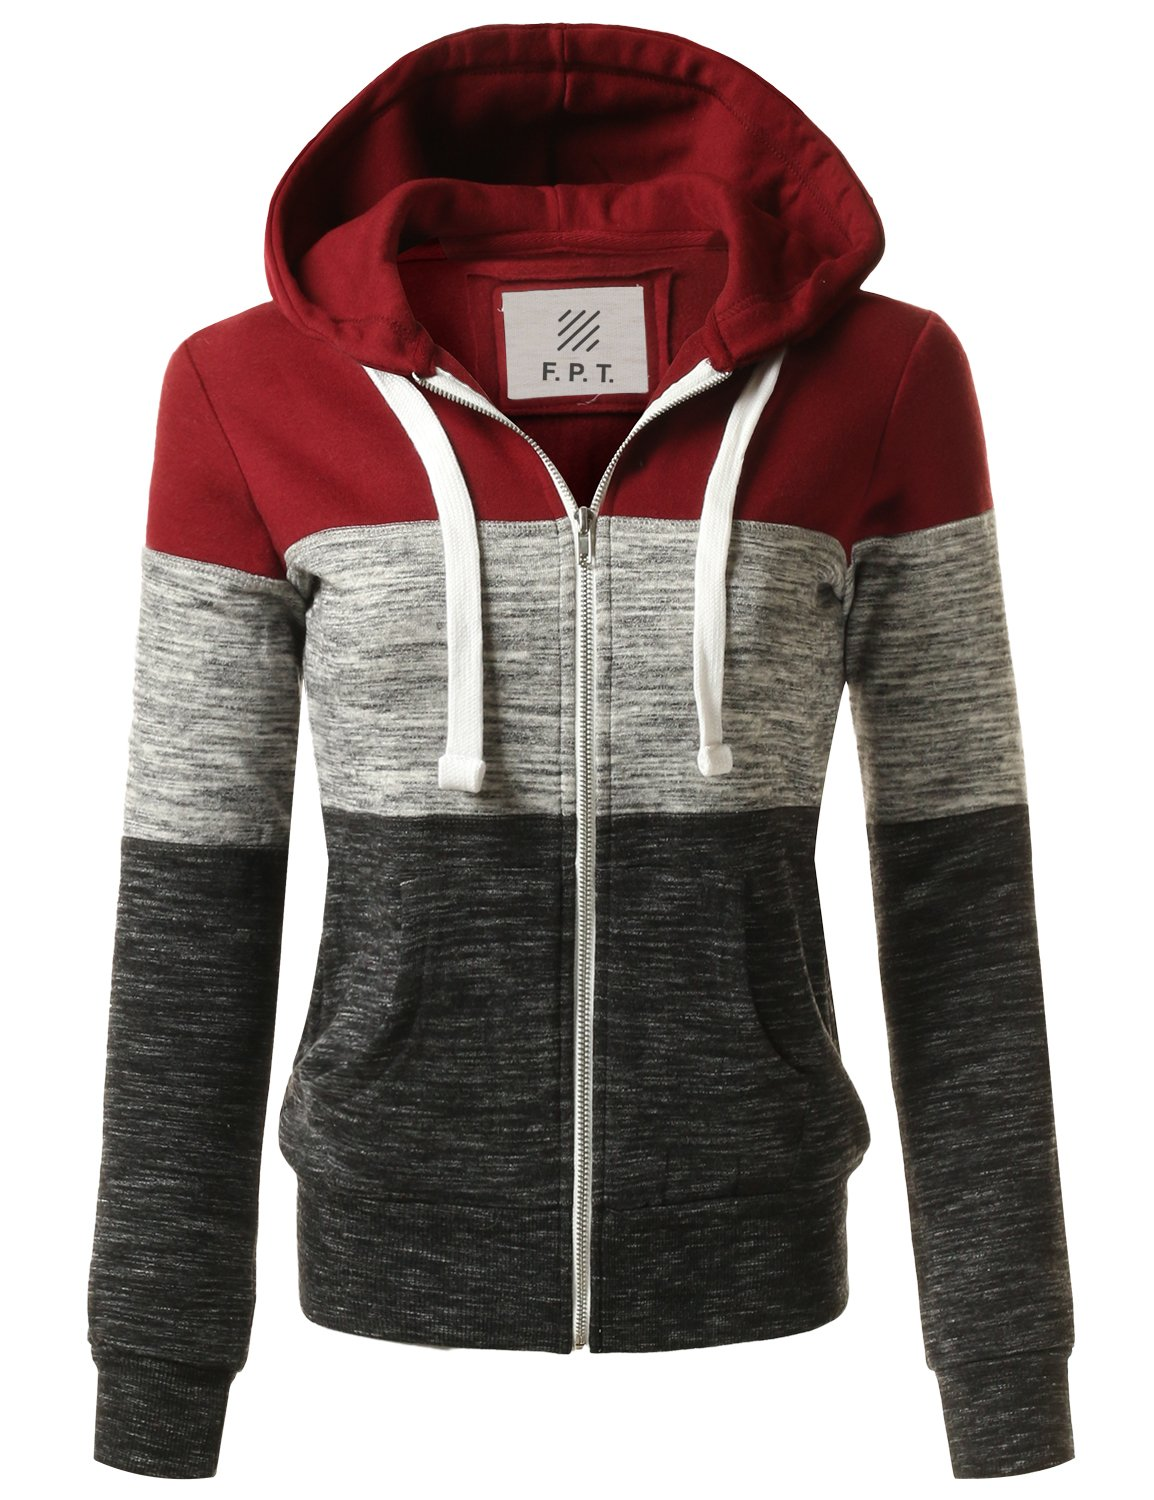 Fifth Parallel Threads FPT Women's Basic Zip Up Hoodie Fleece Jacket FPAWOHOL01